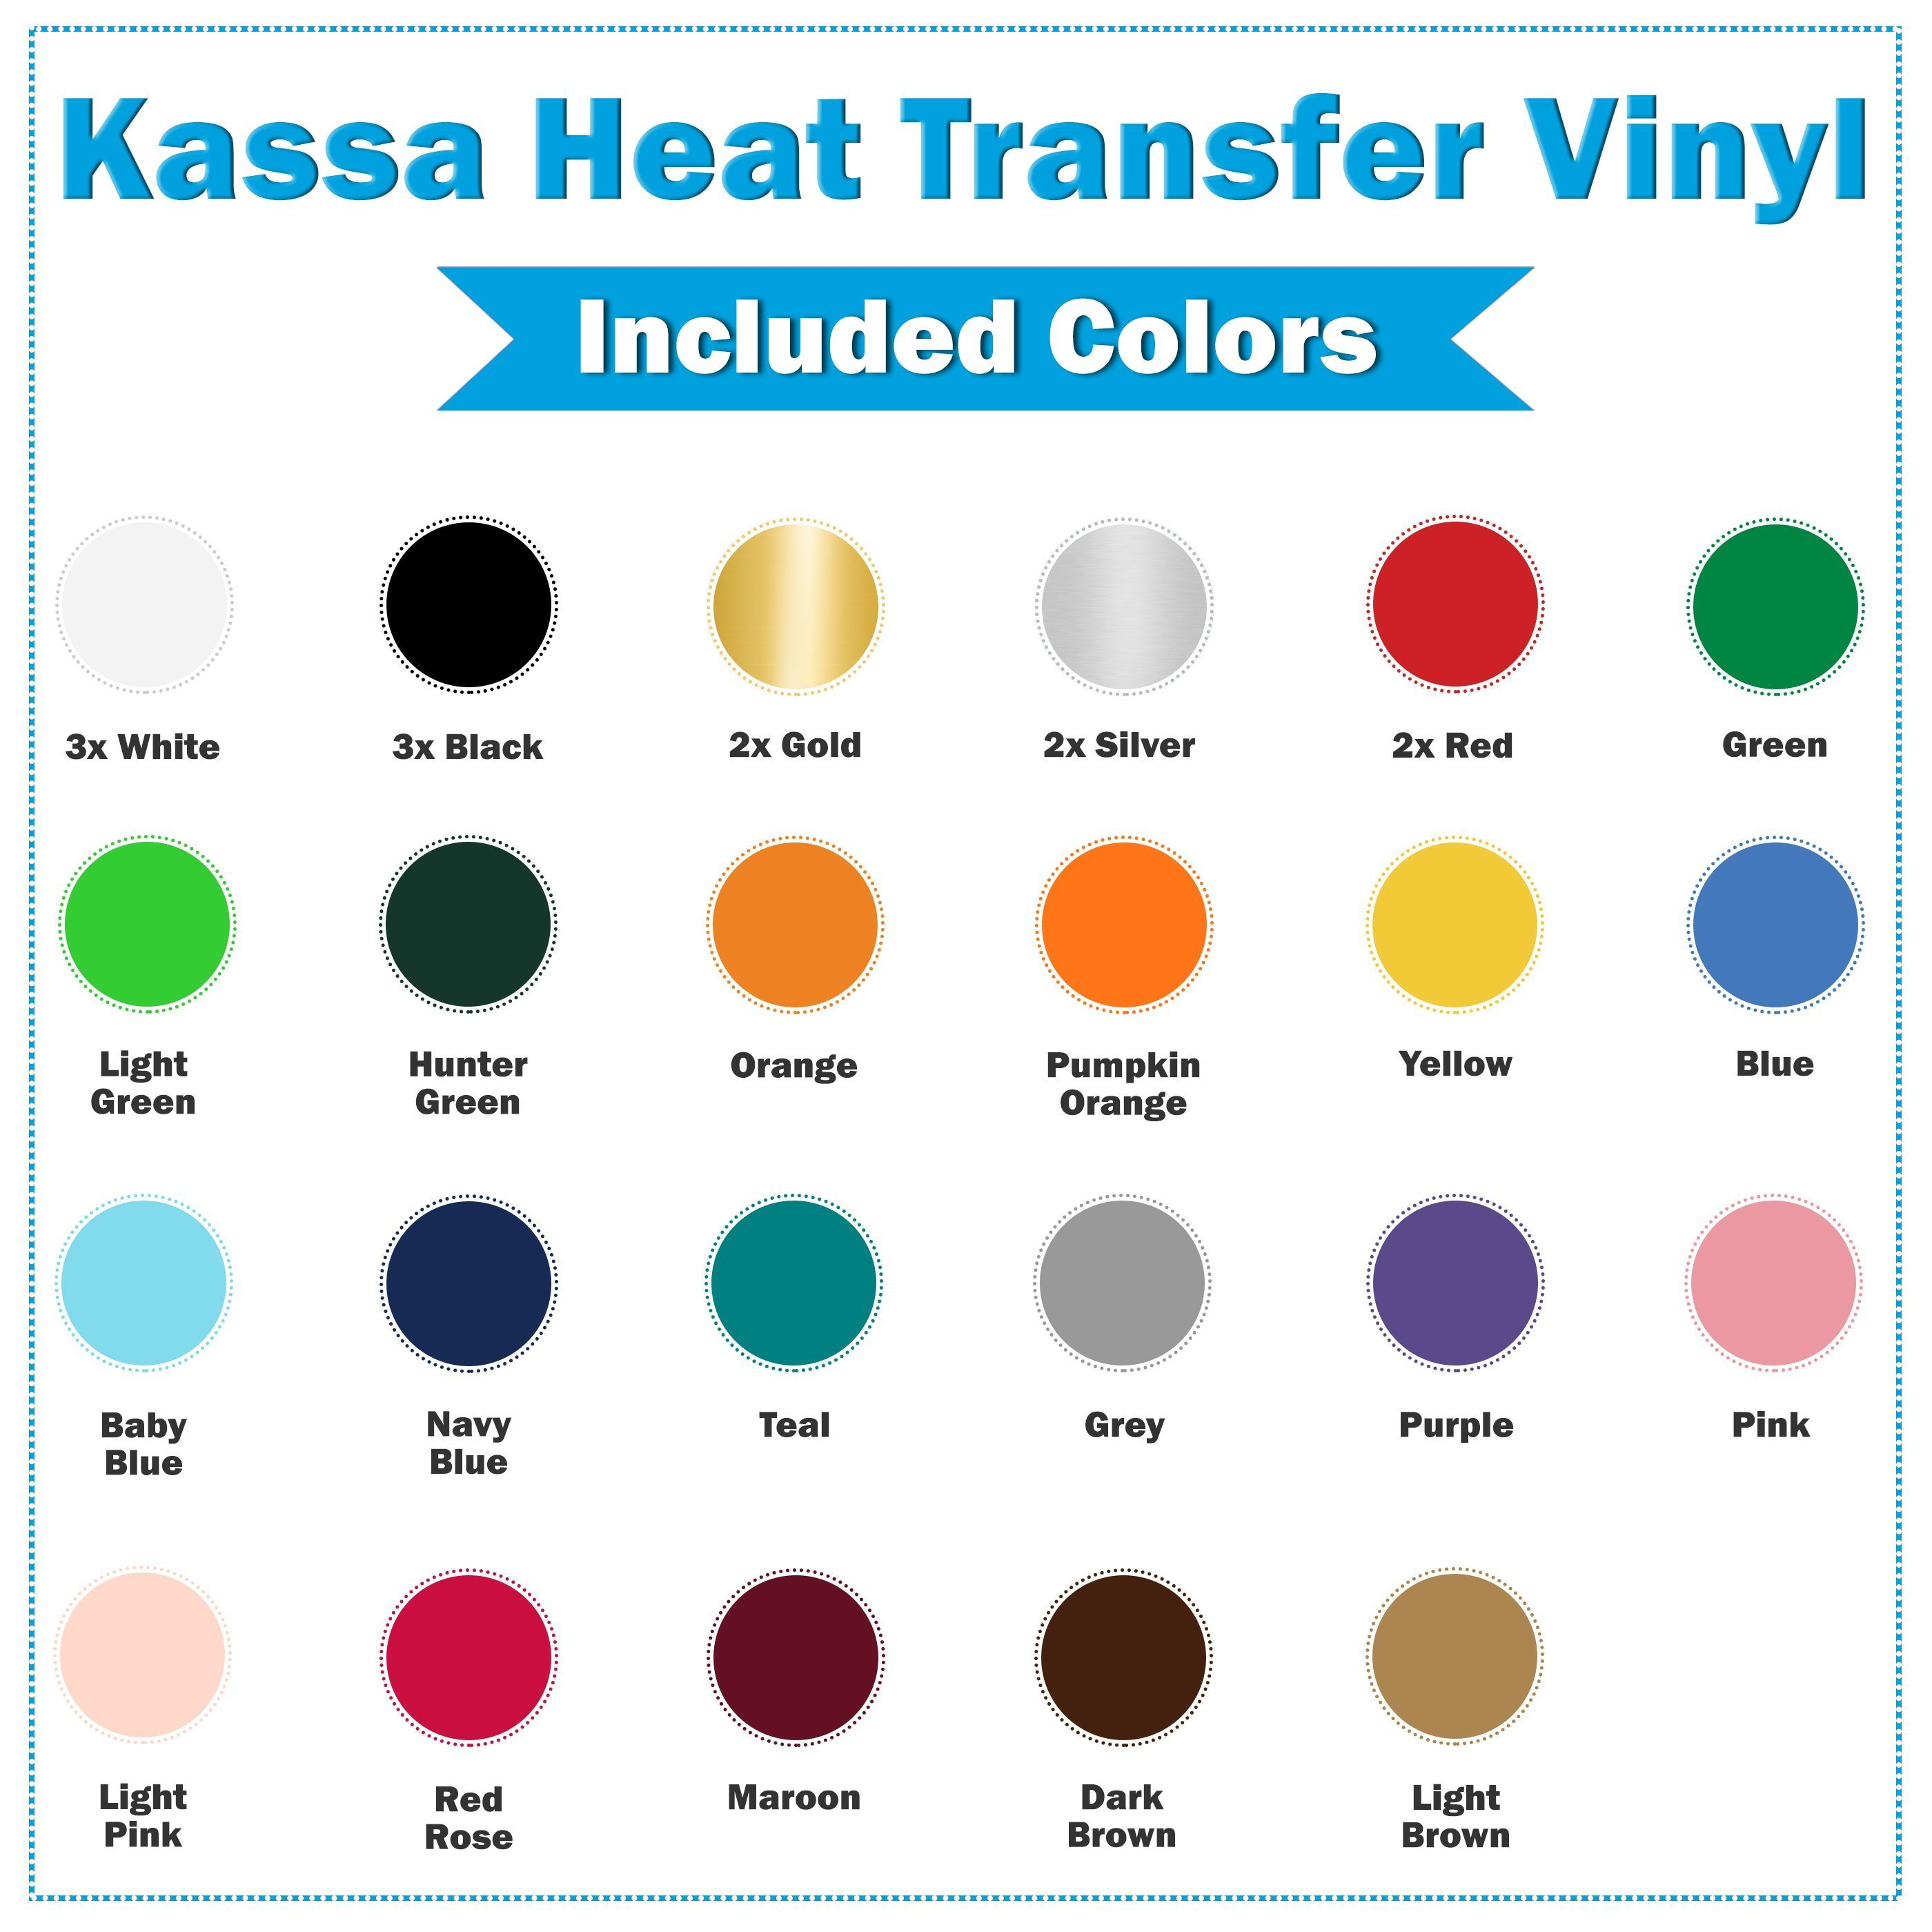 13 Assorted Colors Heat Transfer Vinyl for Cricut /& Silhouette Cameo and Heat Press HTV Iron on Vinyl 13 Sheets 12 x 10 by KISSWILL